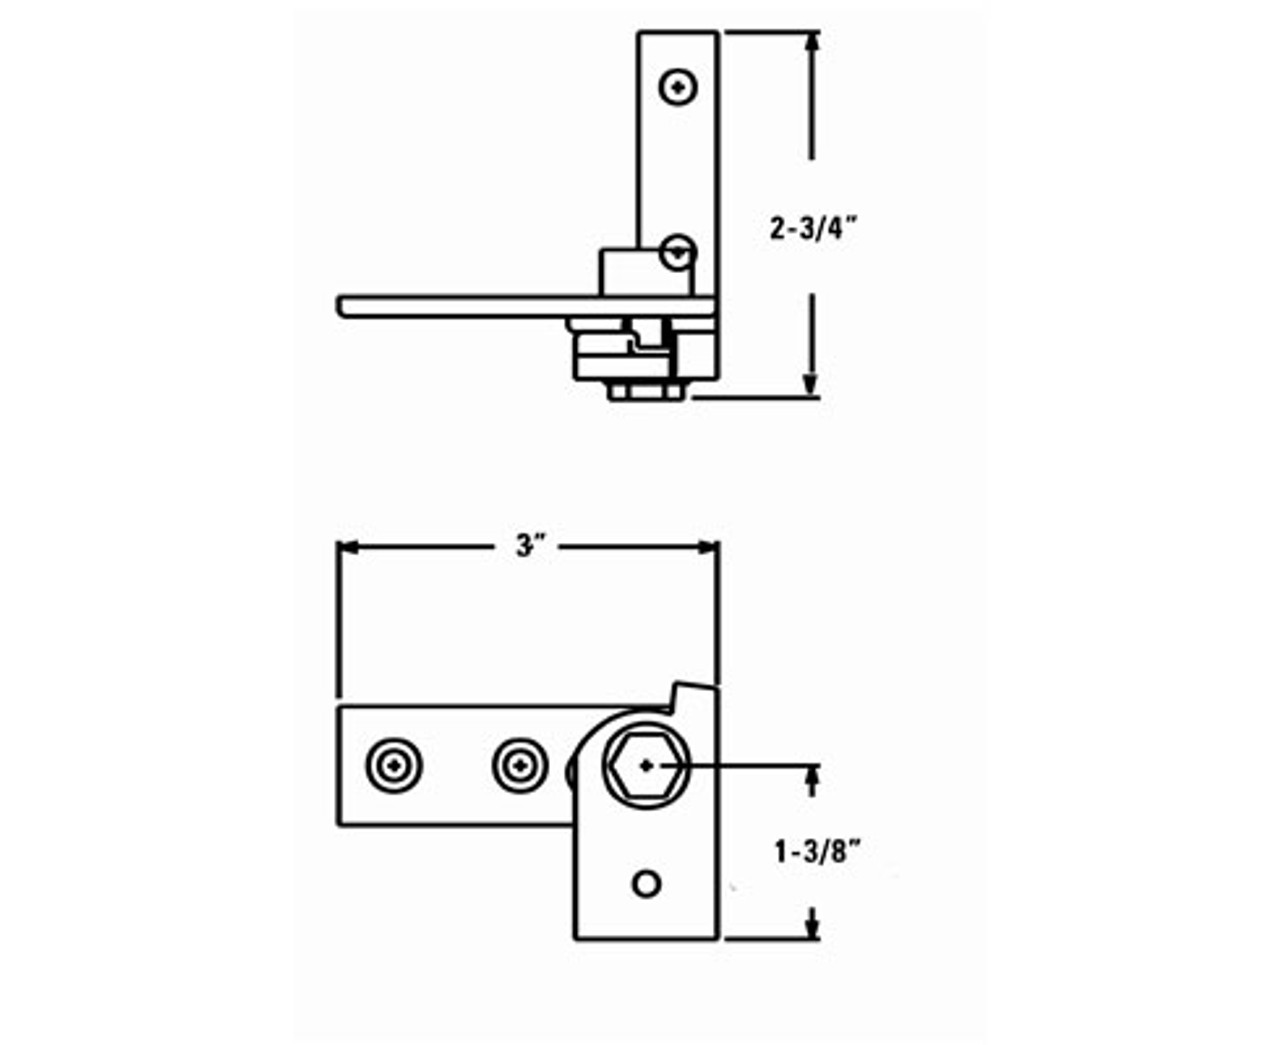 Kason-1521-pivot-hinge-for-reach-in-cooler-11521L00004-11521R00008-dimensions